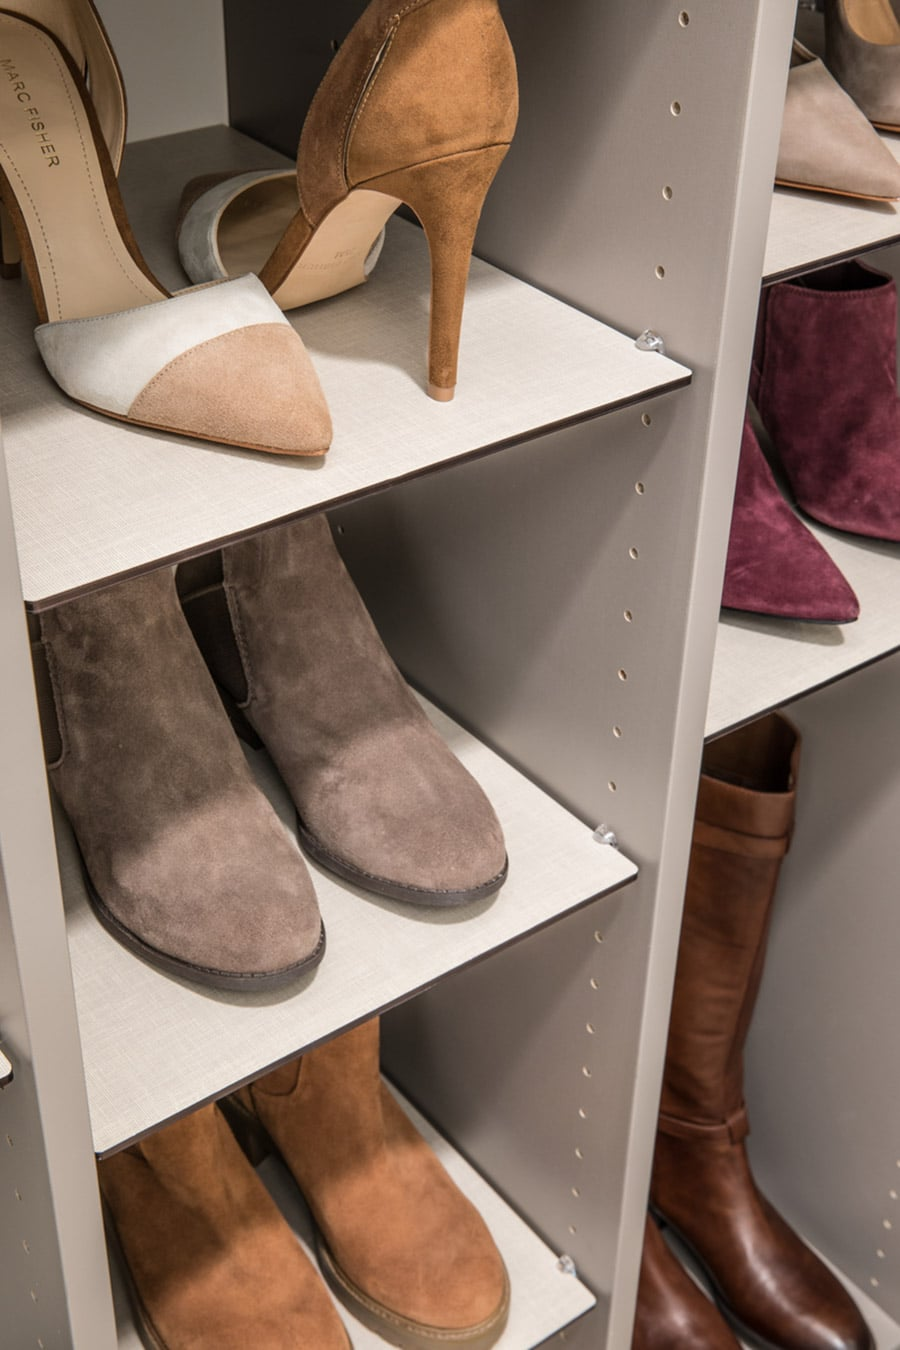 Adjustable shoe shelves for boot and high heels Columbus ohio | Innovate Home Org | #ShoeShelving #StorageSystem #OrganizationSystem